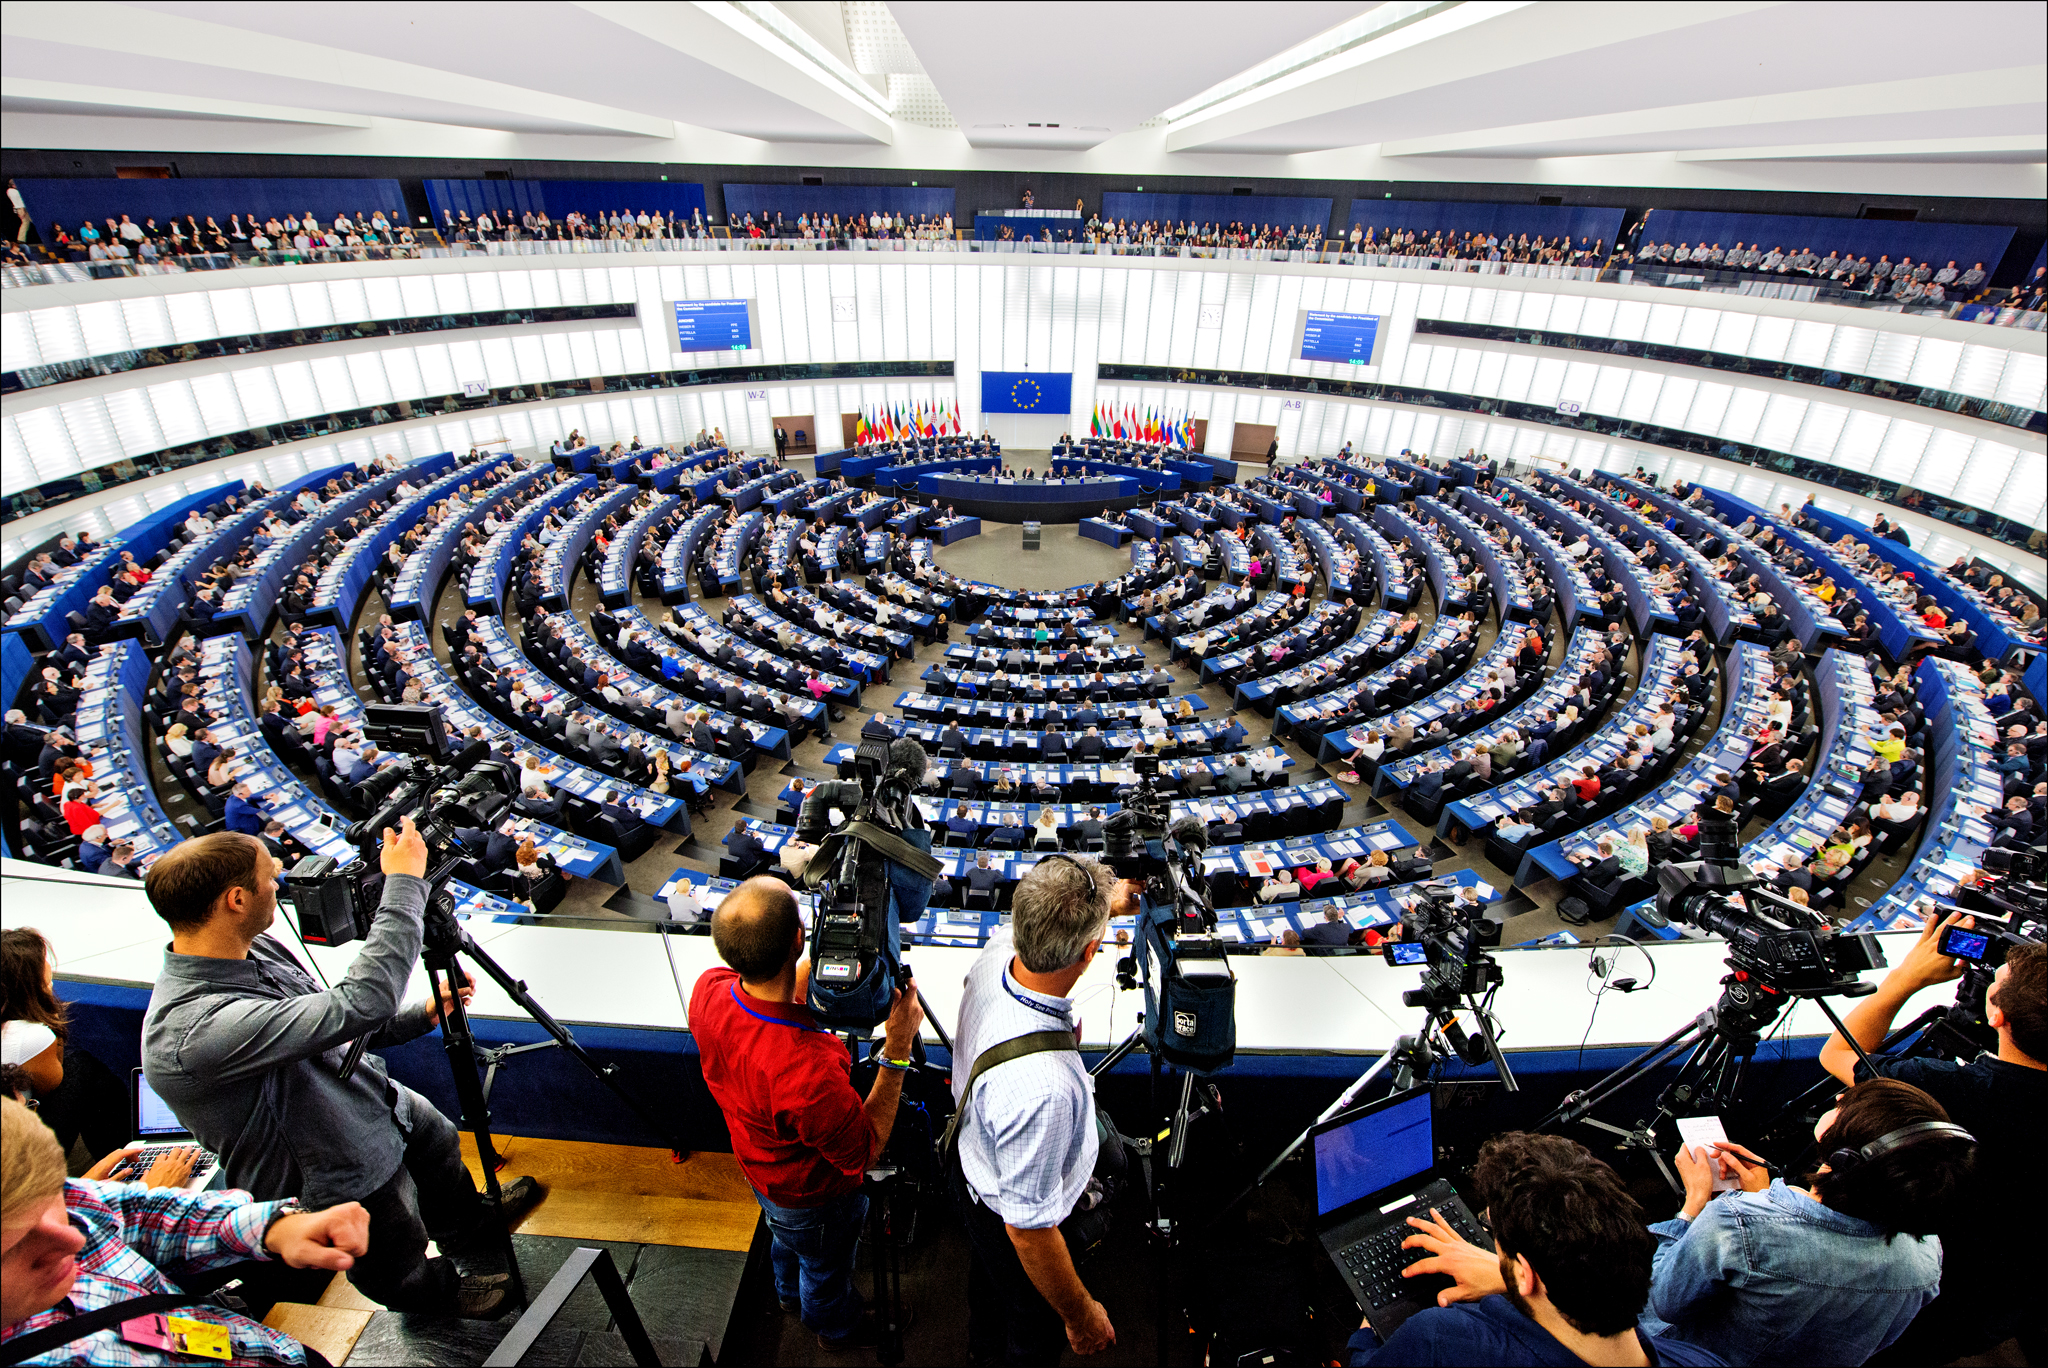 [European Parliament/Flickr]